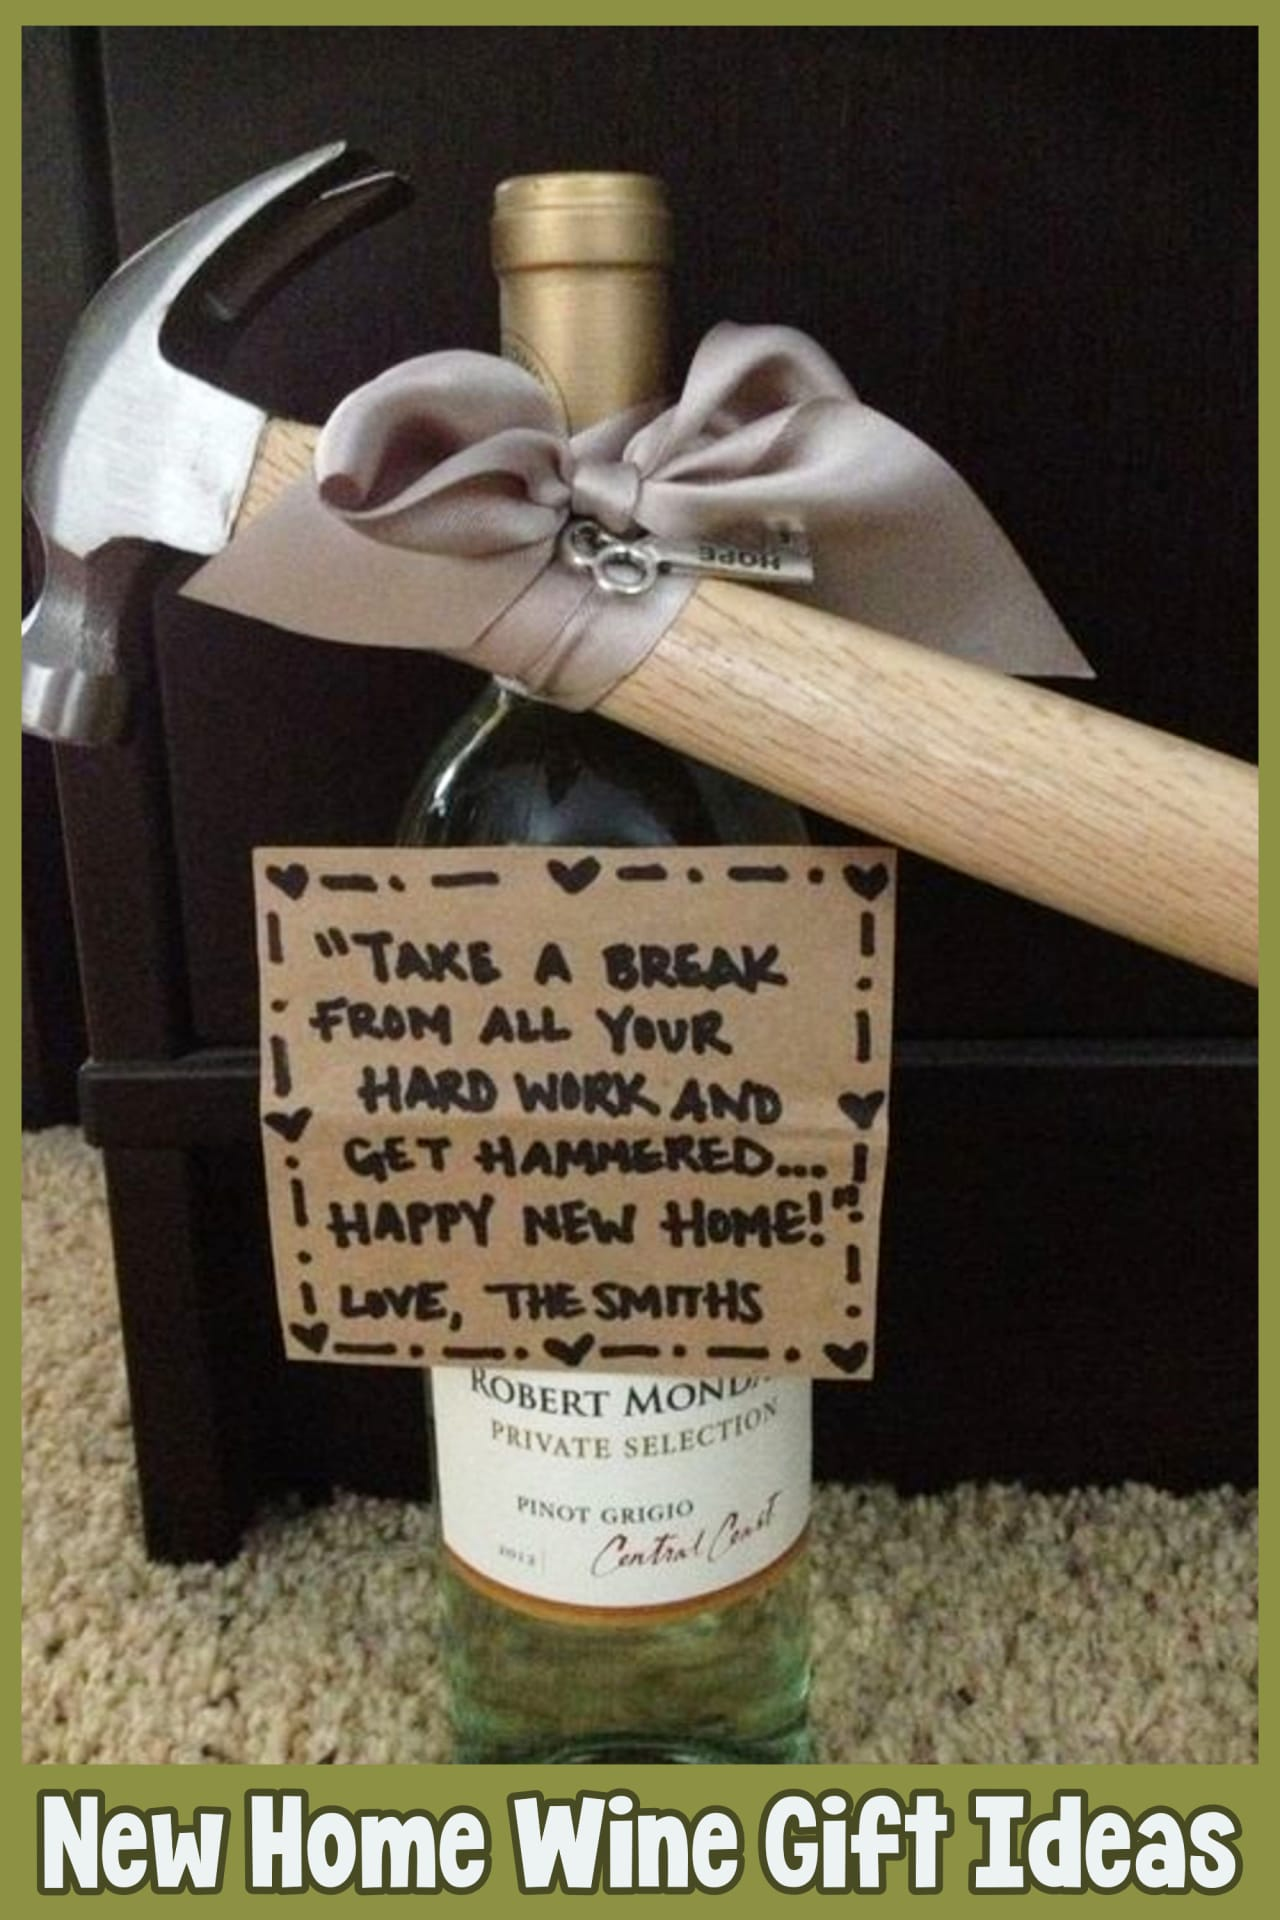 housewarming new home wine gift ideas for wine lovers - Housewarming Gifts For First Time Homeowners in Their First Home - Unique Housewarming Gift Ideas and DIY Housewarming Gifts They'll Love - First Time Home Buyer Gift Basket